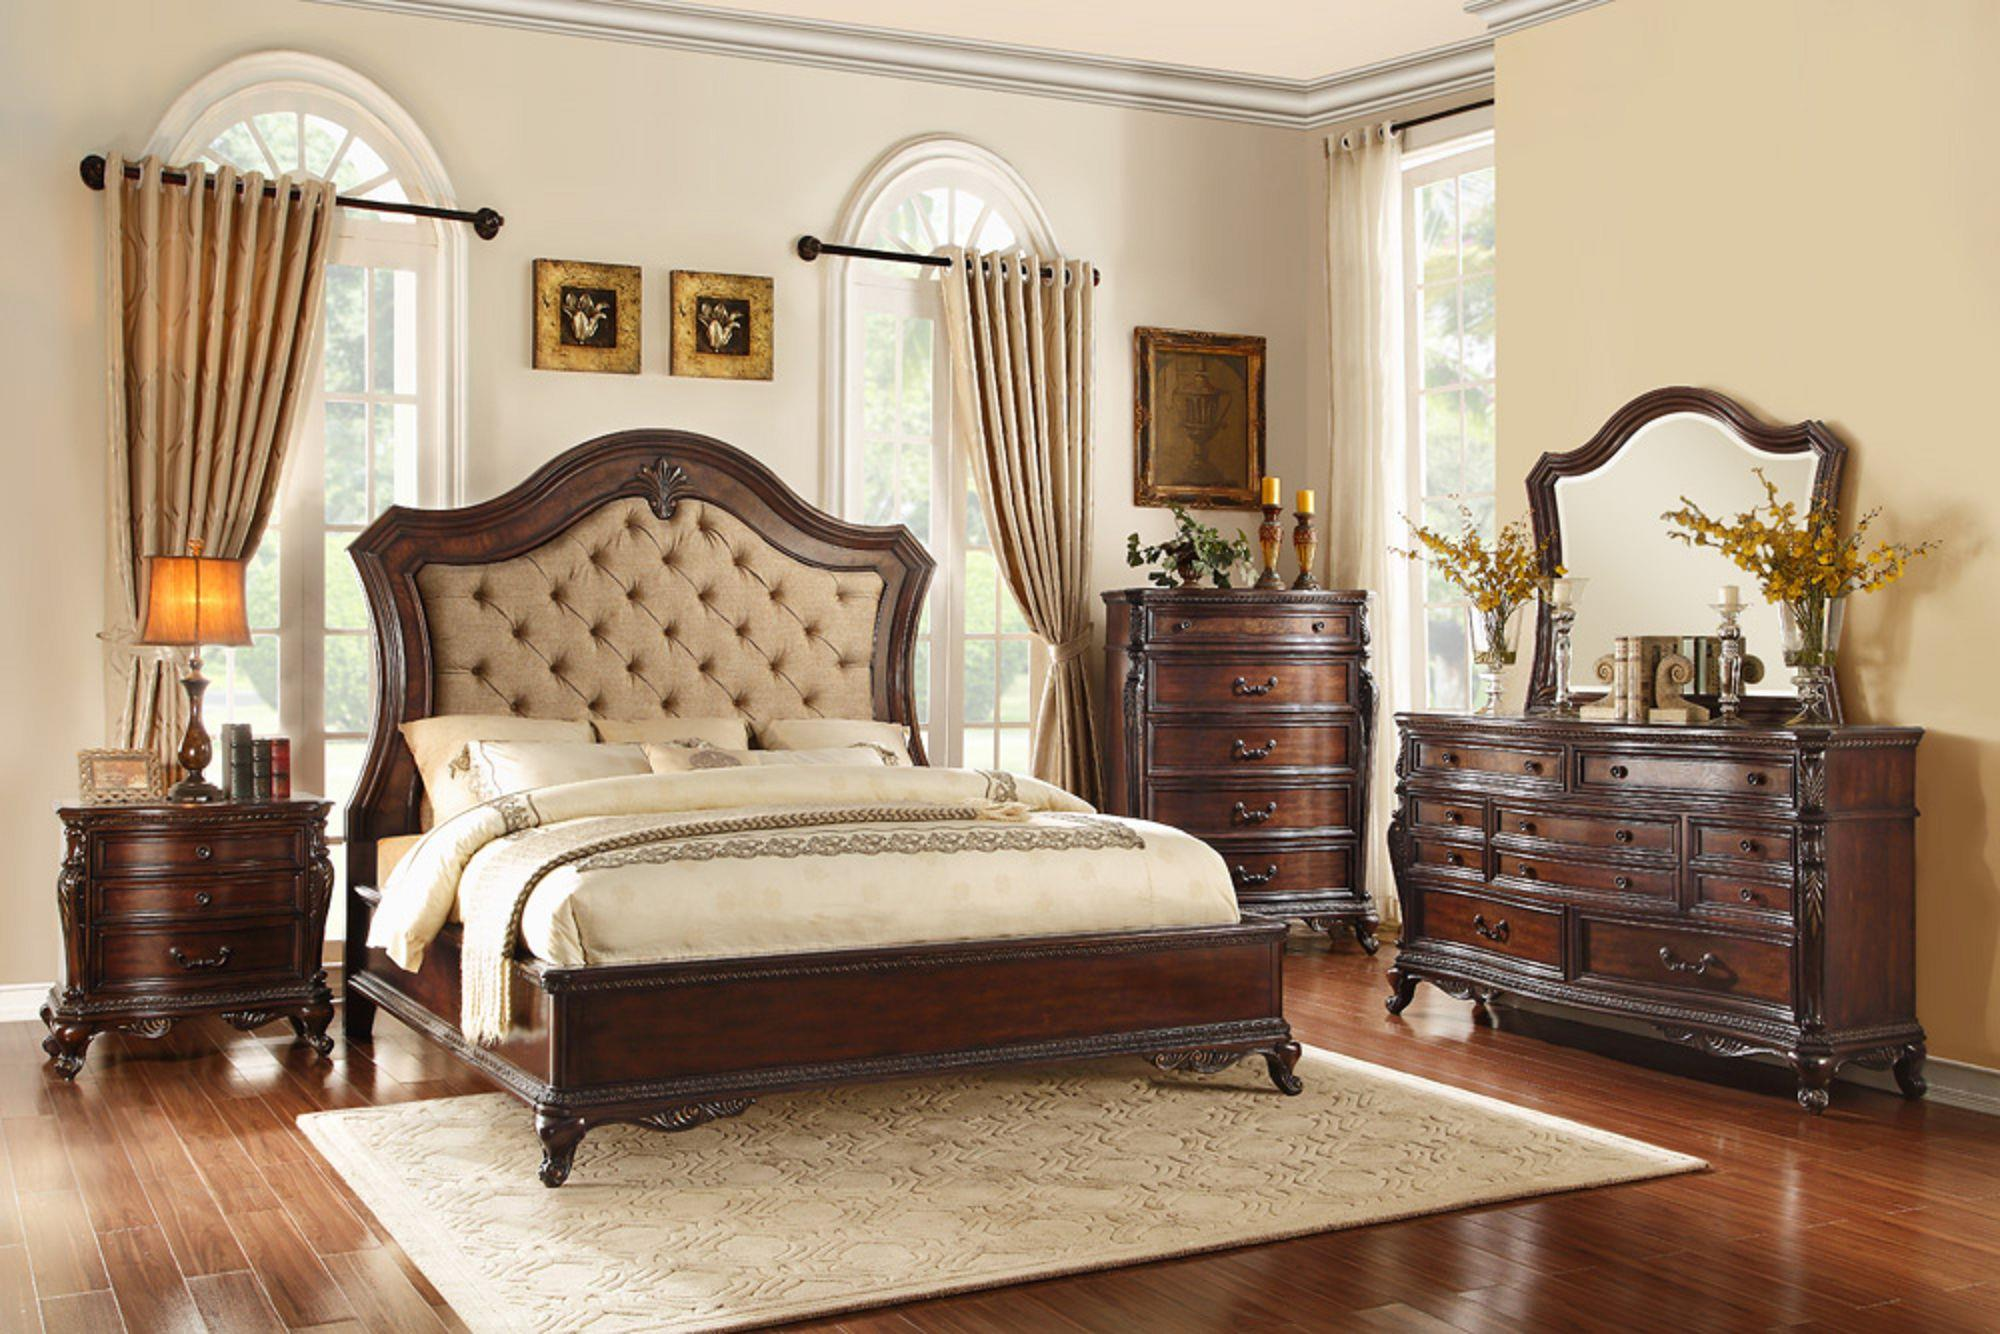 Bonaventure 1935 1935 By Homelegance Dream Home Furniture